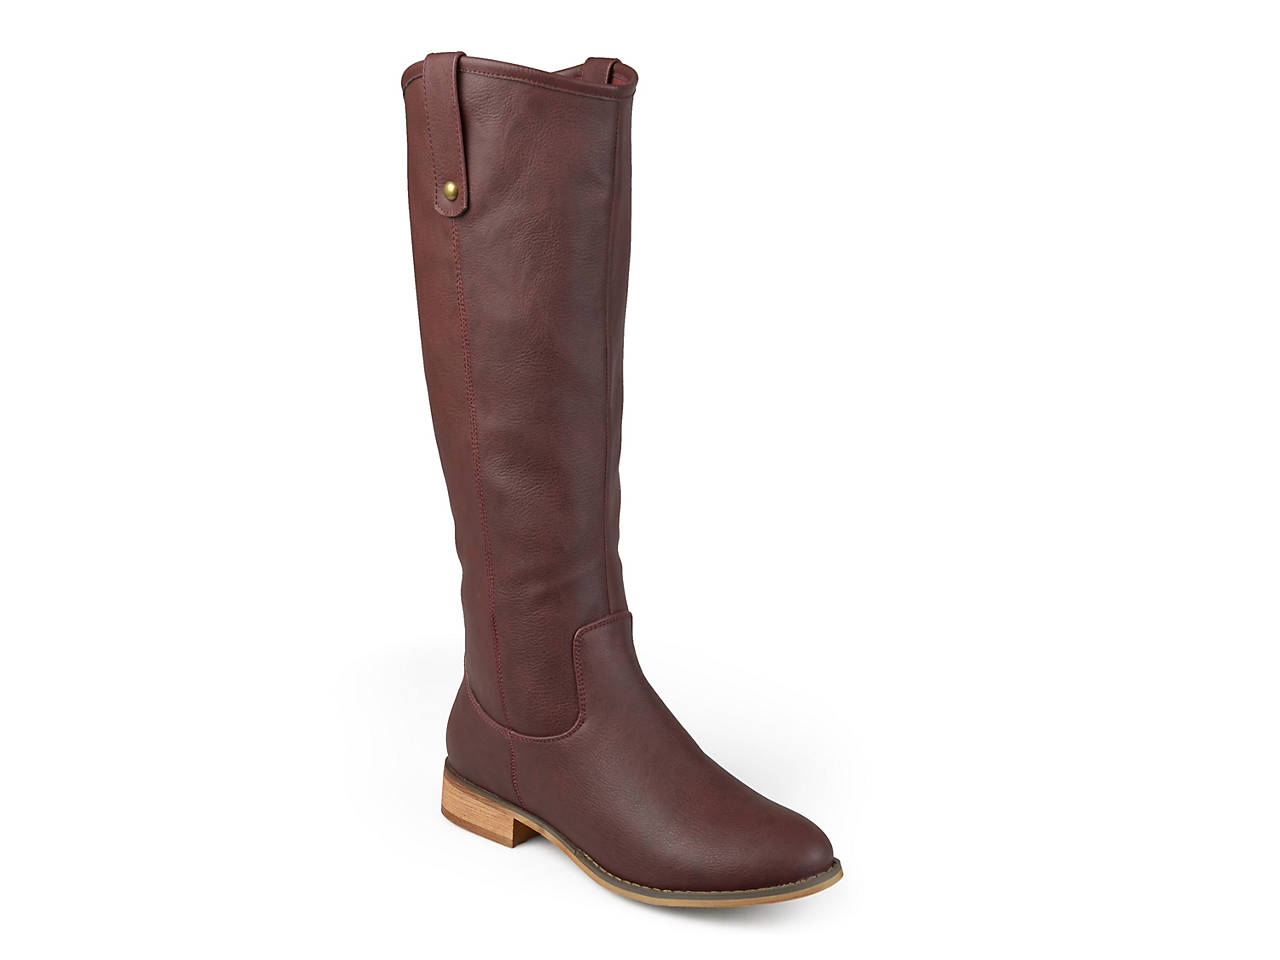 outlet cheap prices Journee Collection Taven ... Women's Riding Boots free shipping cheap quality sale exclusive kGs4itMG7